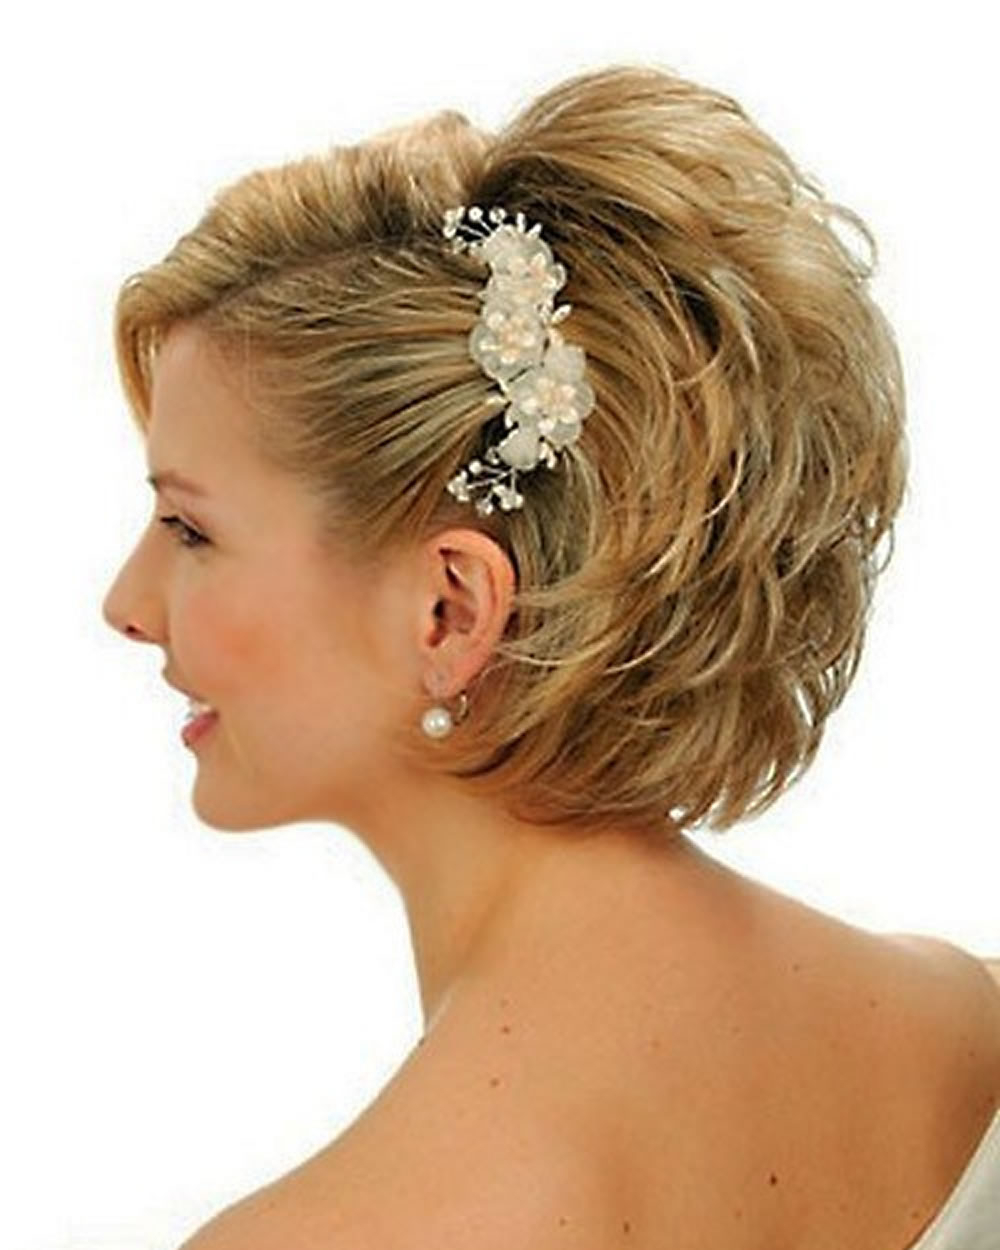 2018 Wedding Hairstyles And Make Up Guide For Short Hair – Hairstyles Pertaining To Hairstyles For Brides With Short Hair (View 14 of 25)